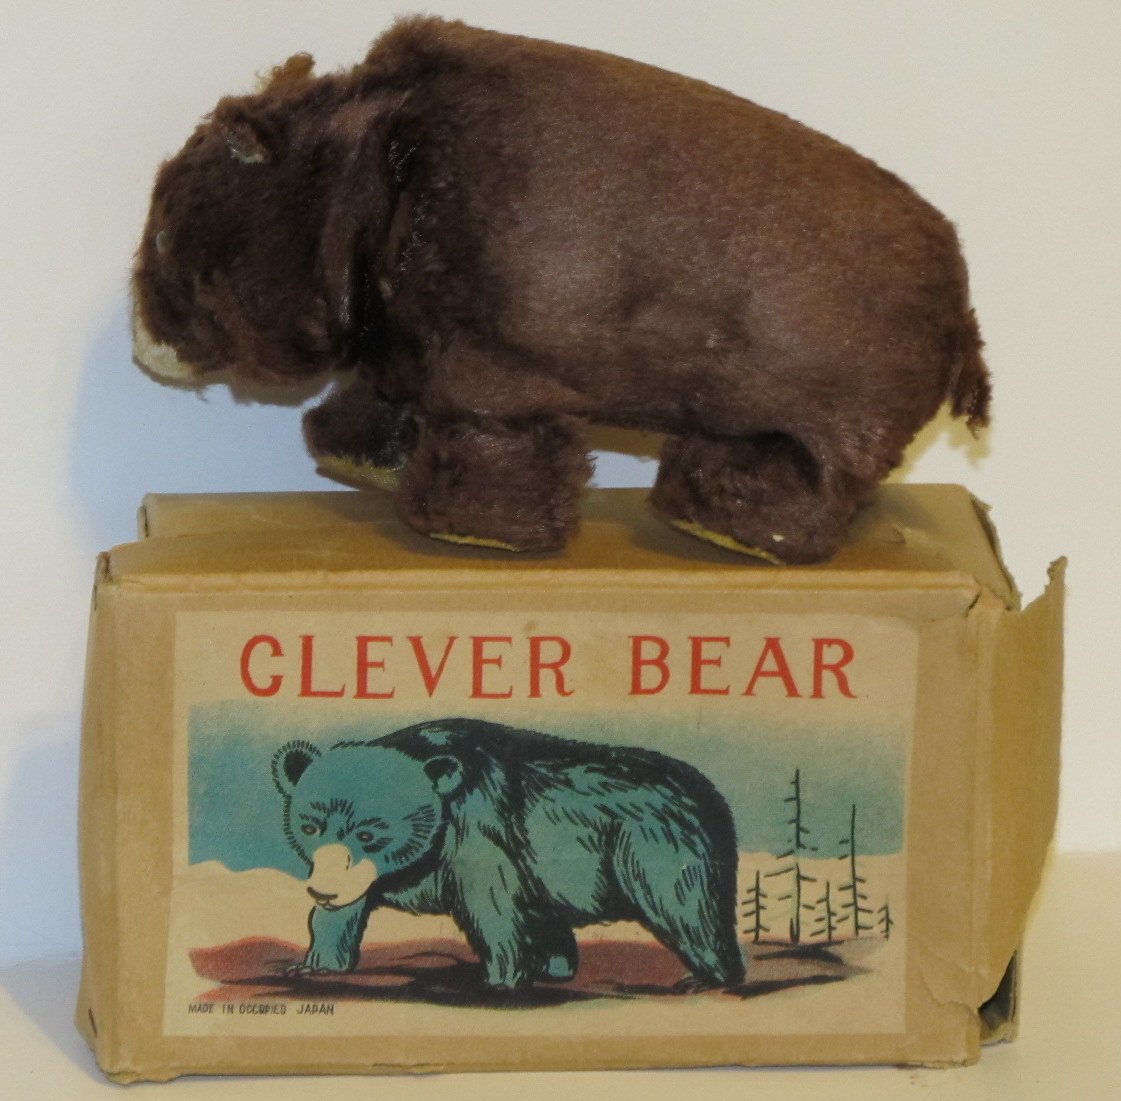 Clever Bear Walking Wind-Up Toy Bear Made in Occupied Japan